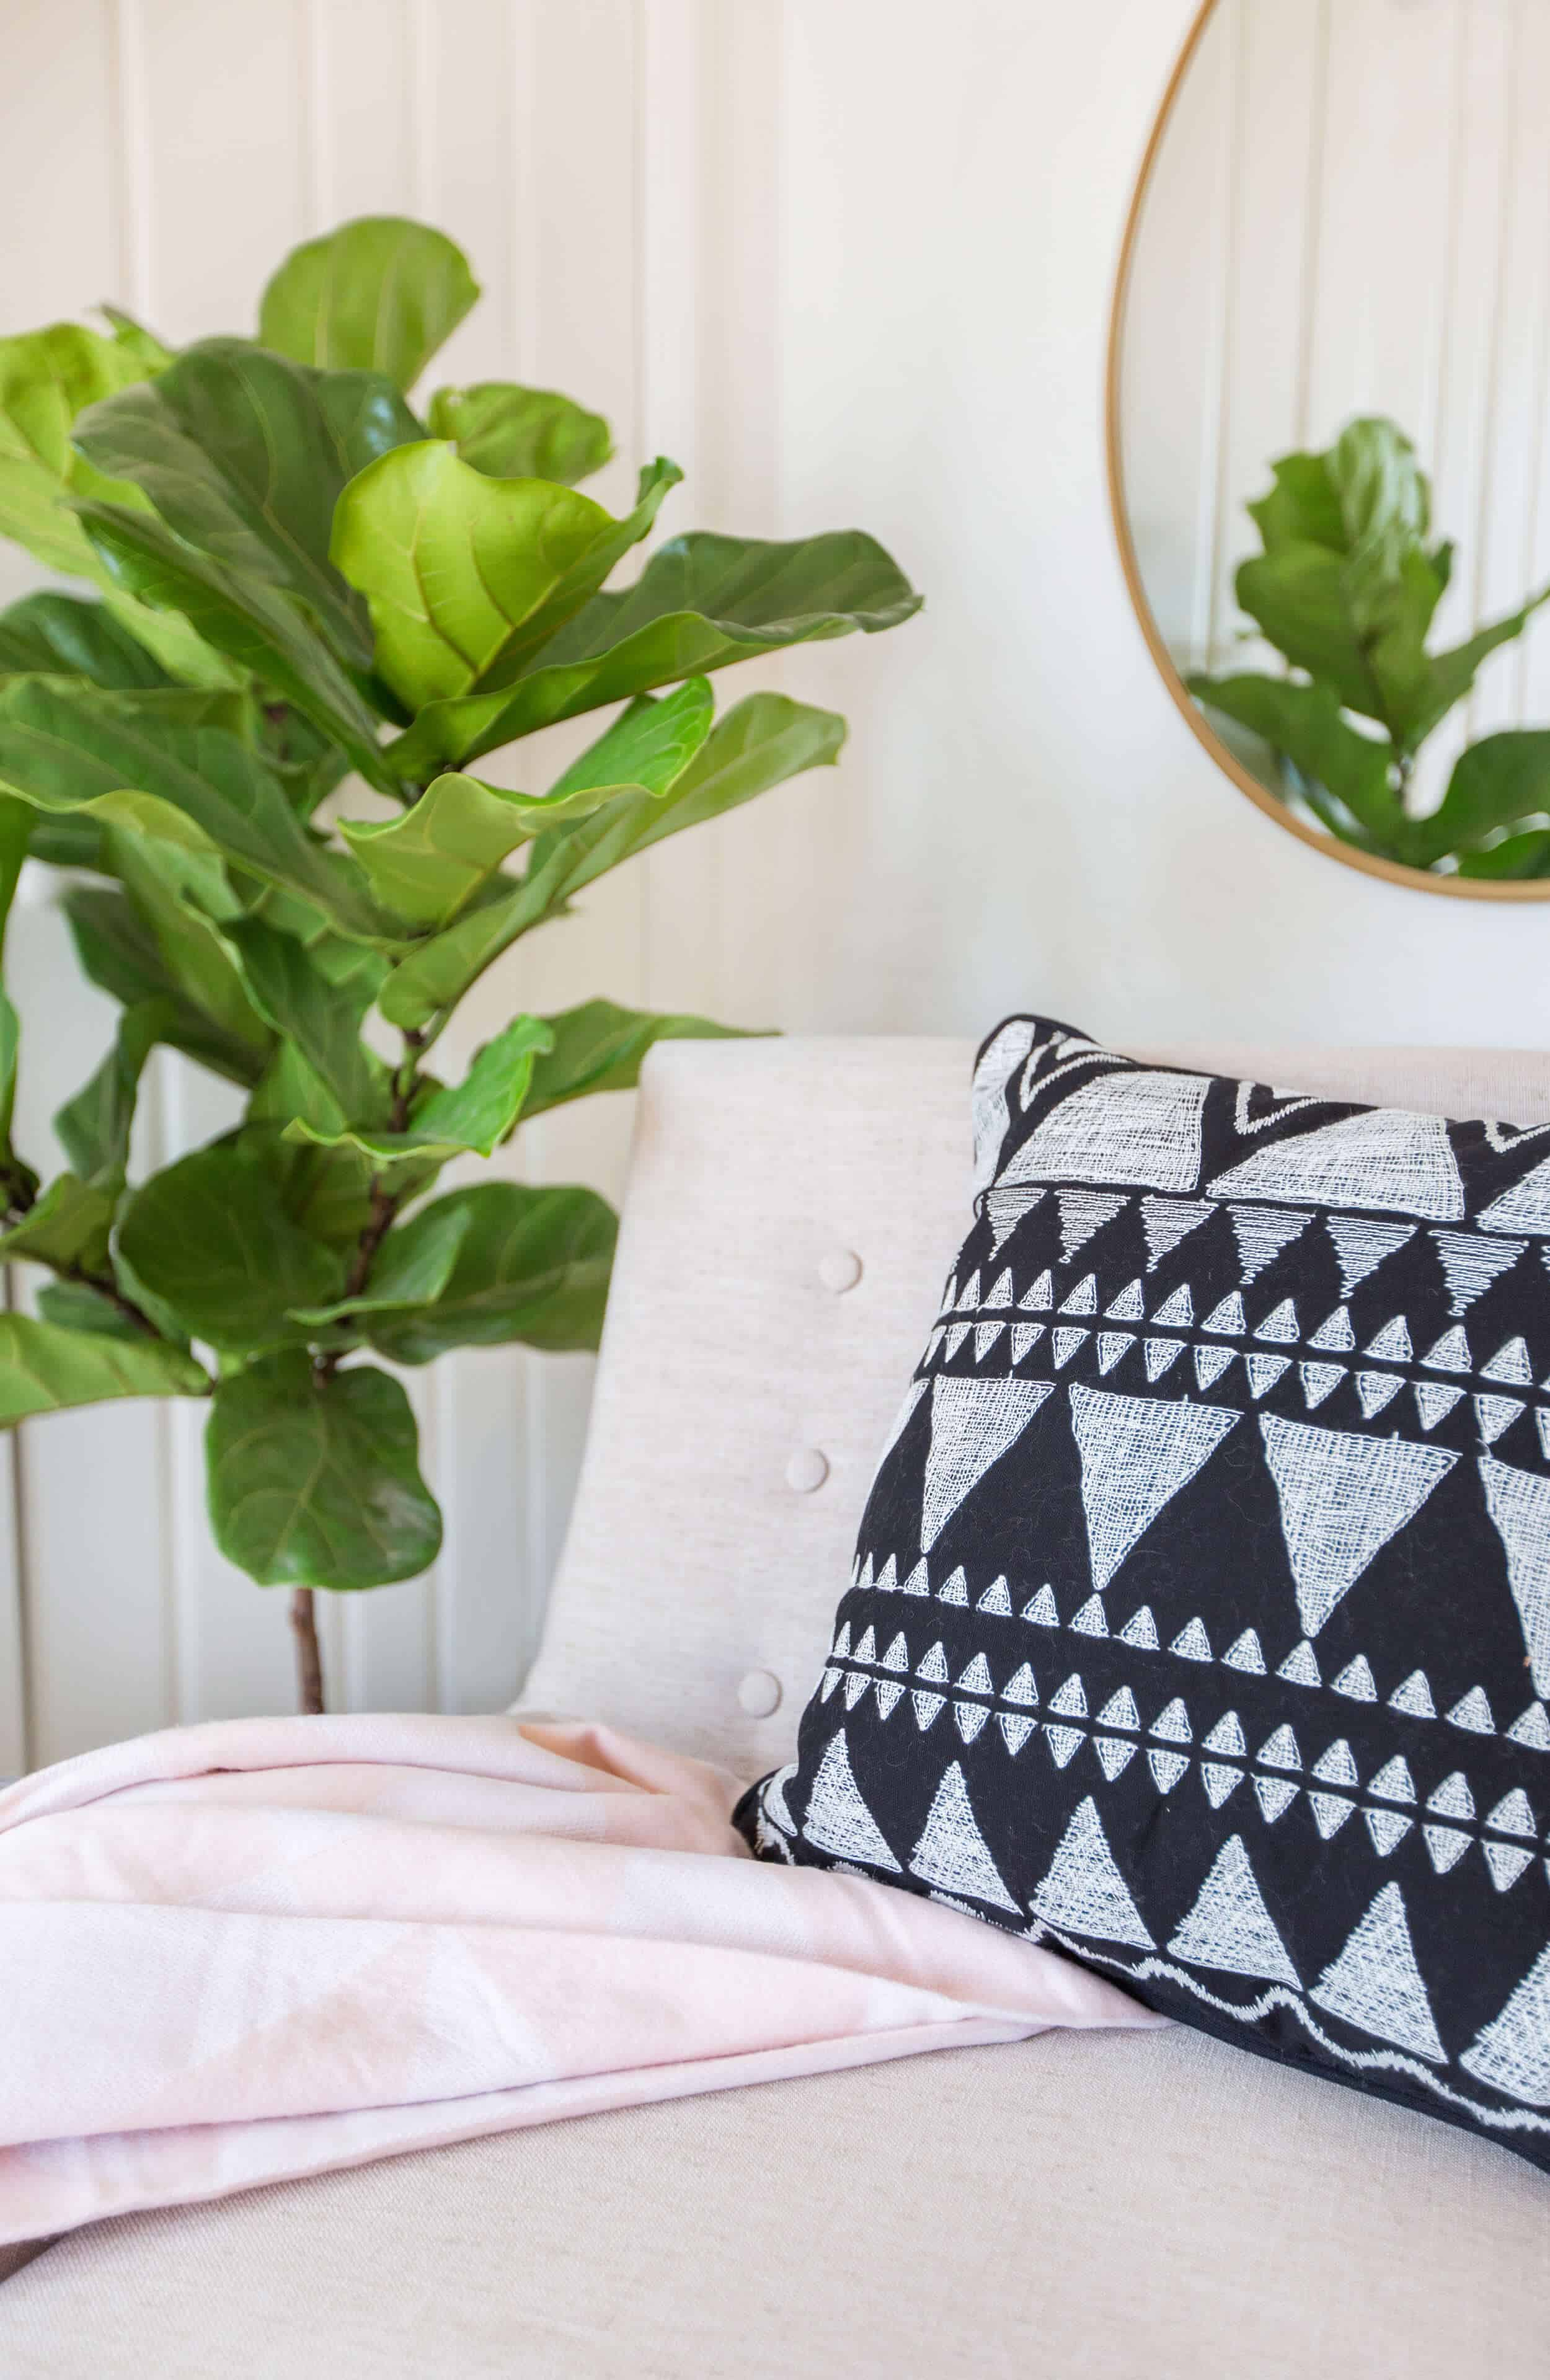 emily-henderson_target_find-your-style_vignette_scandinavian_relaxed_natural_airy_modern_10